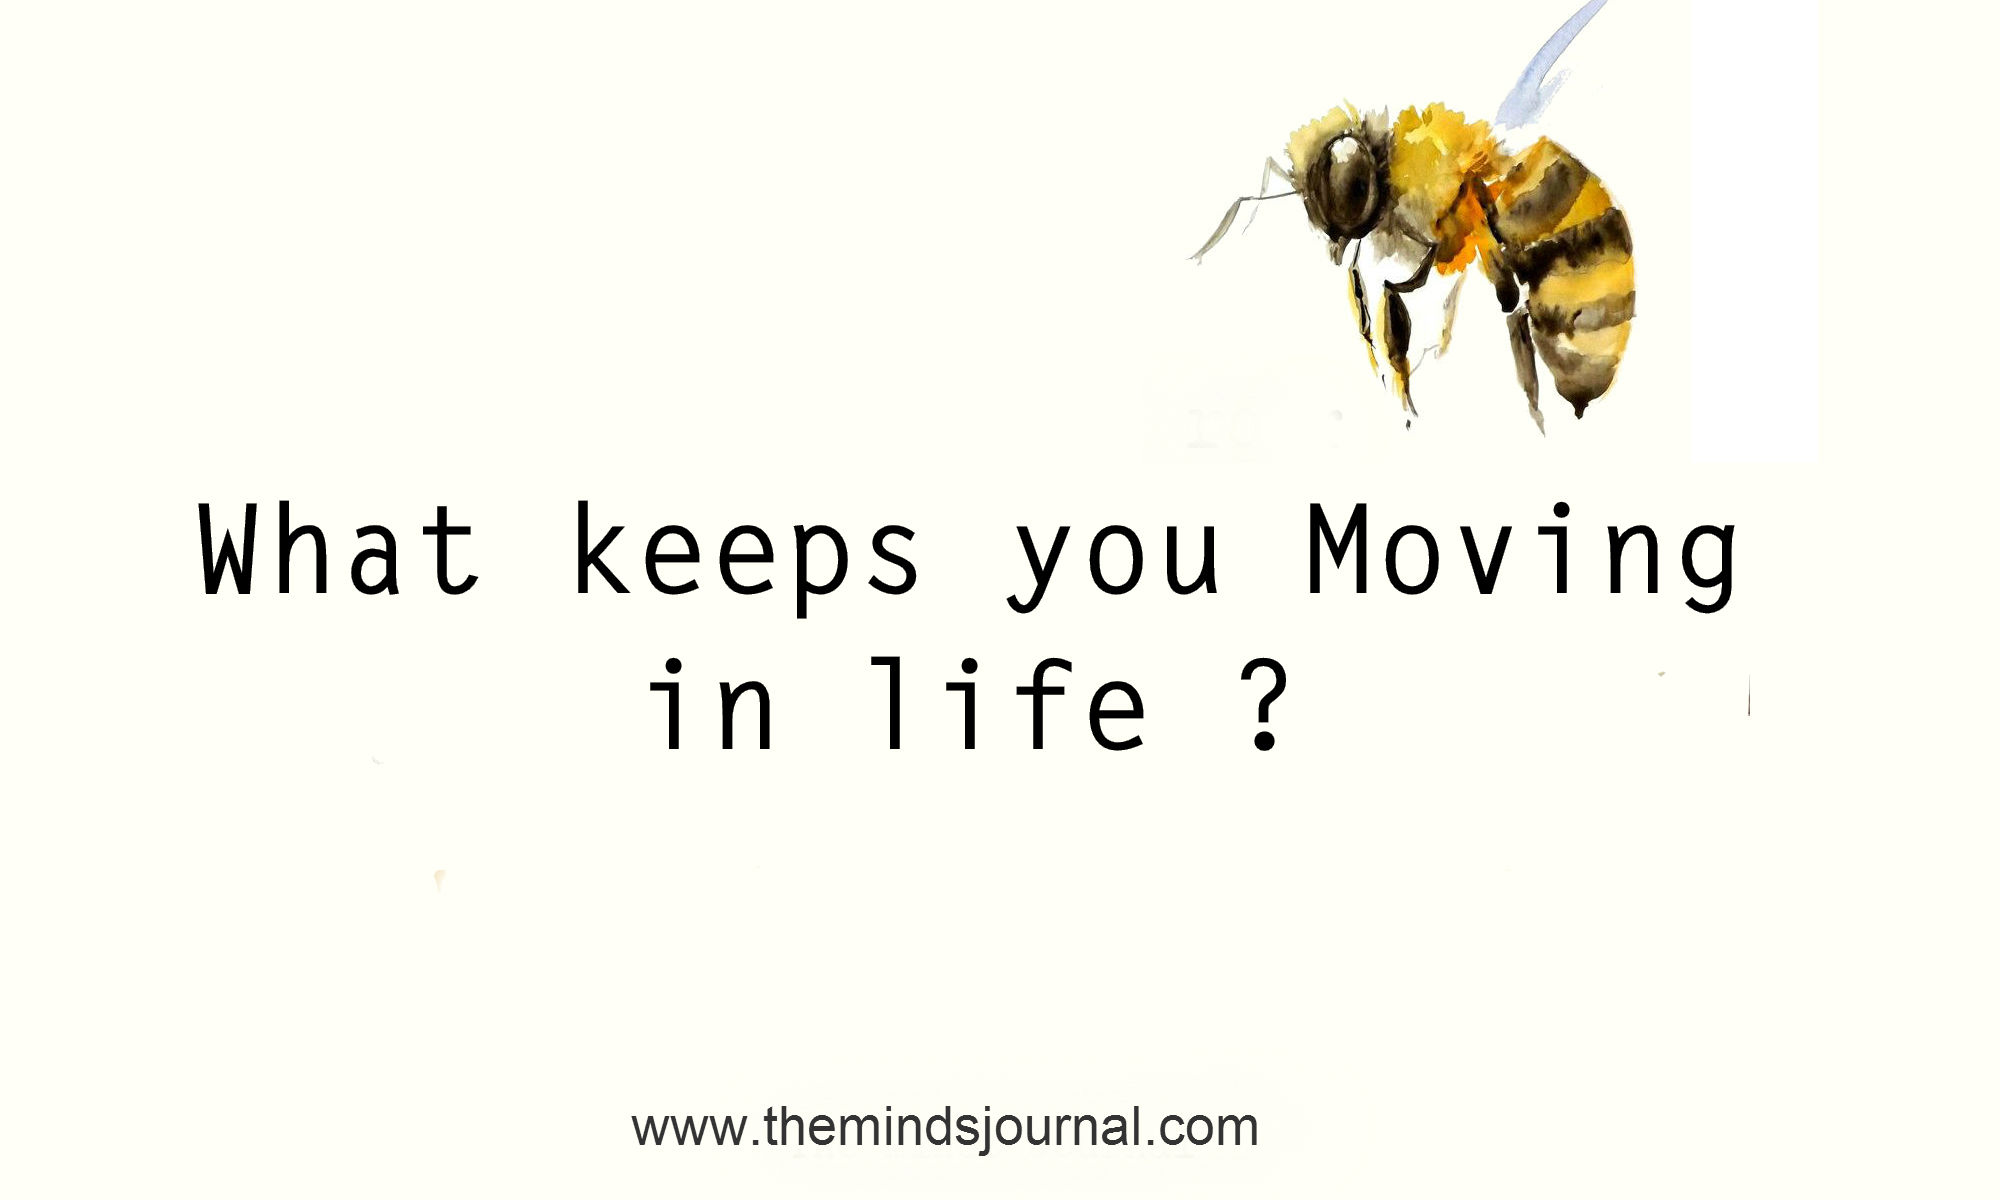 What keeps you moving in life ?